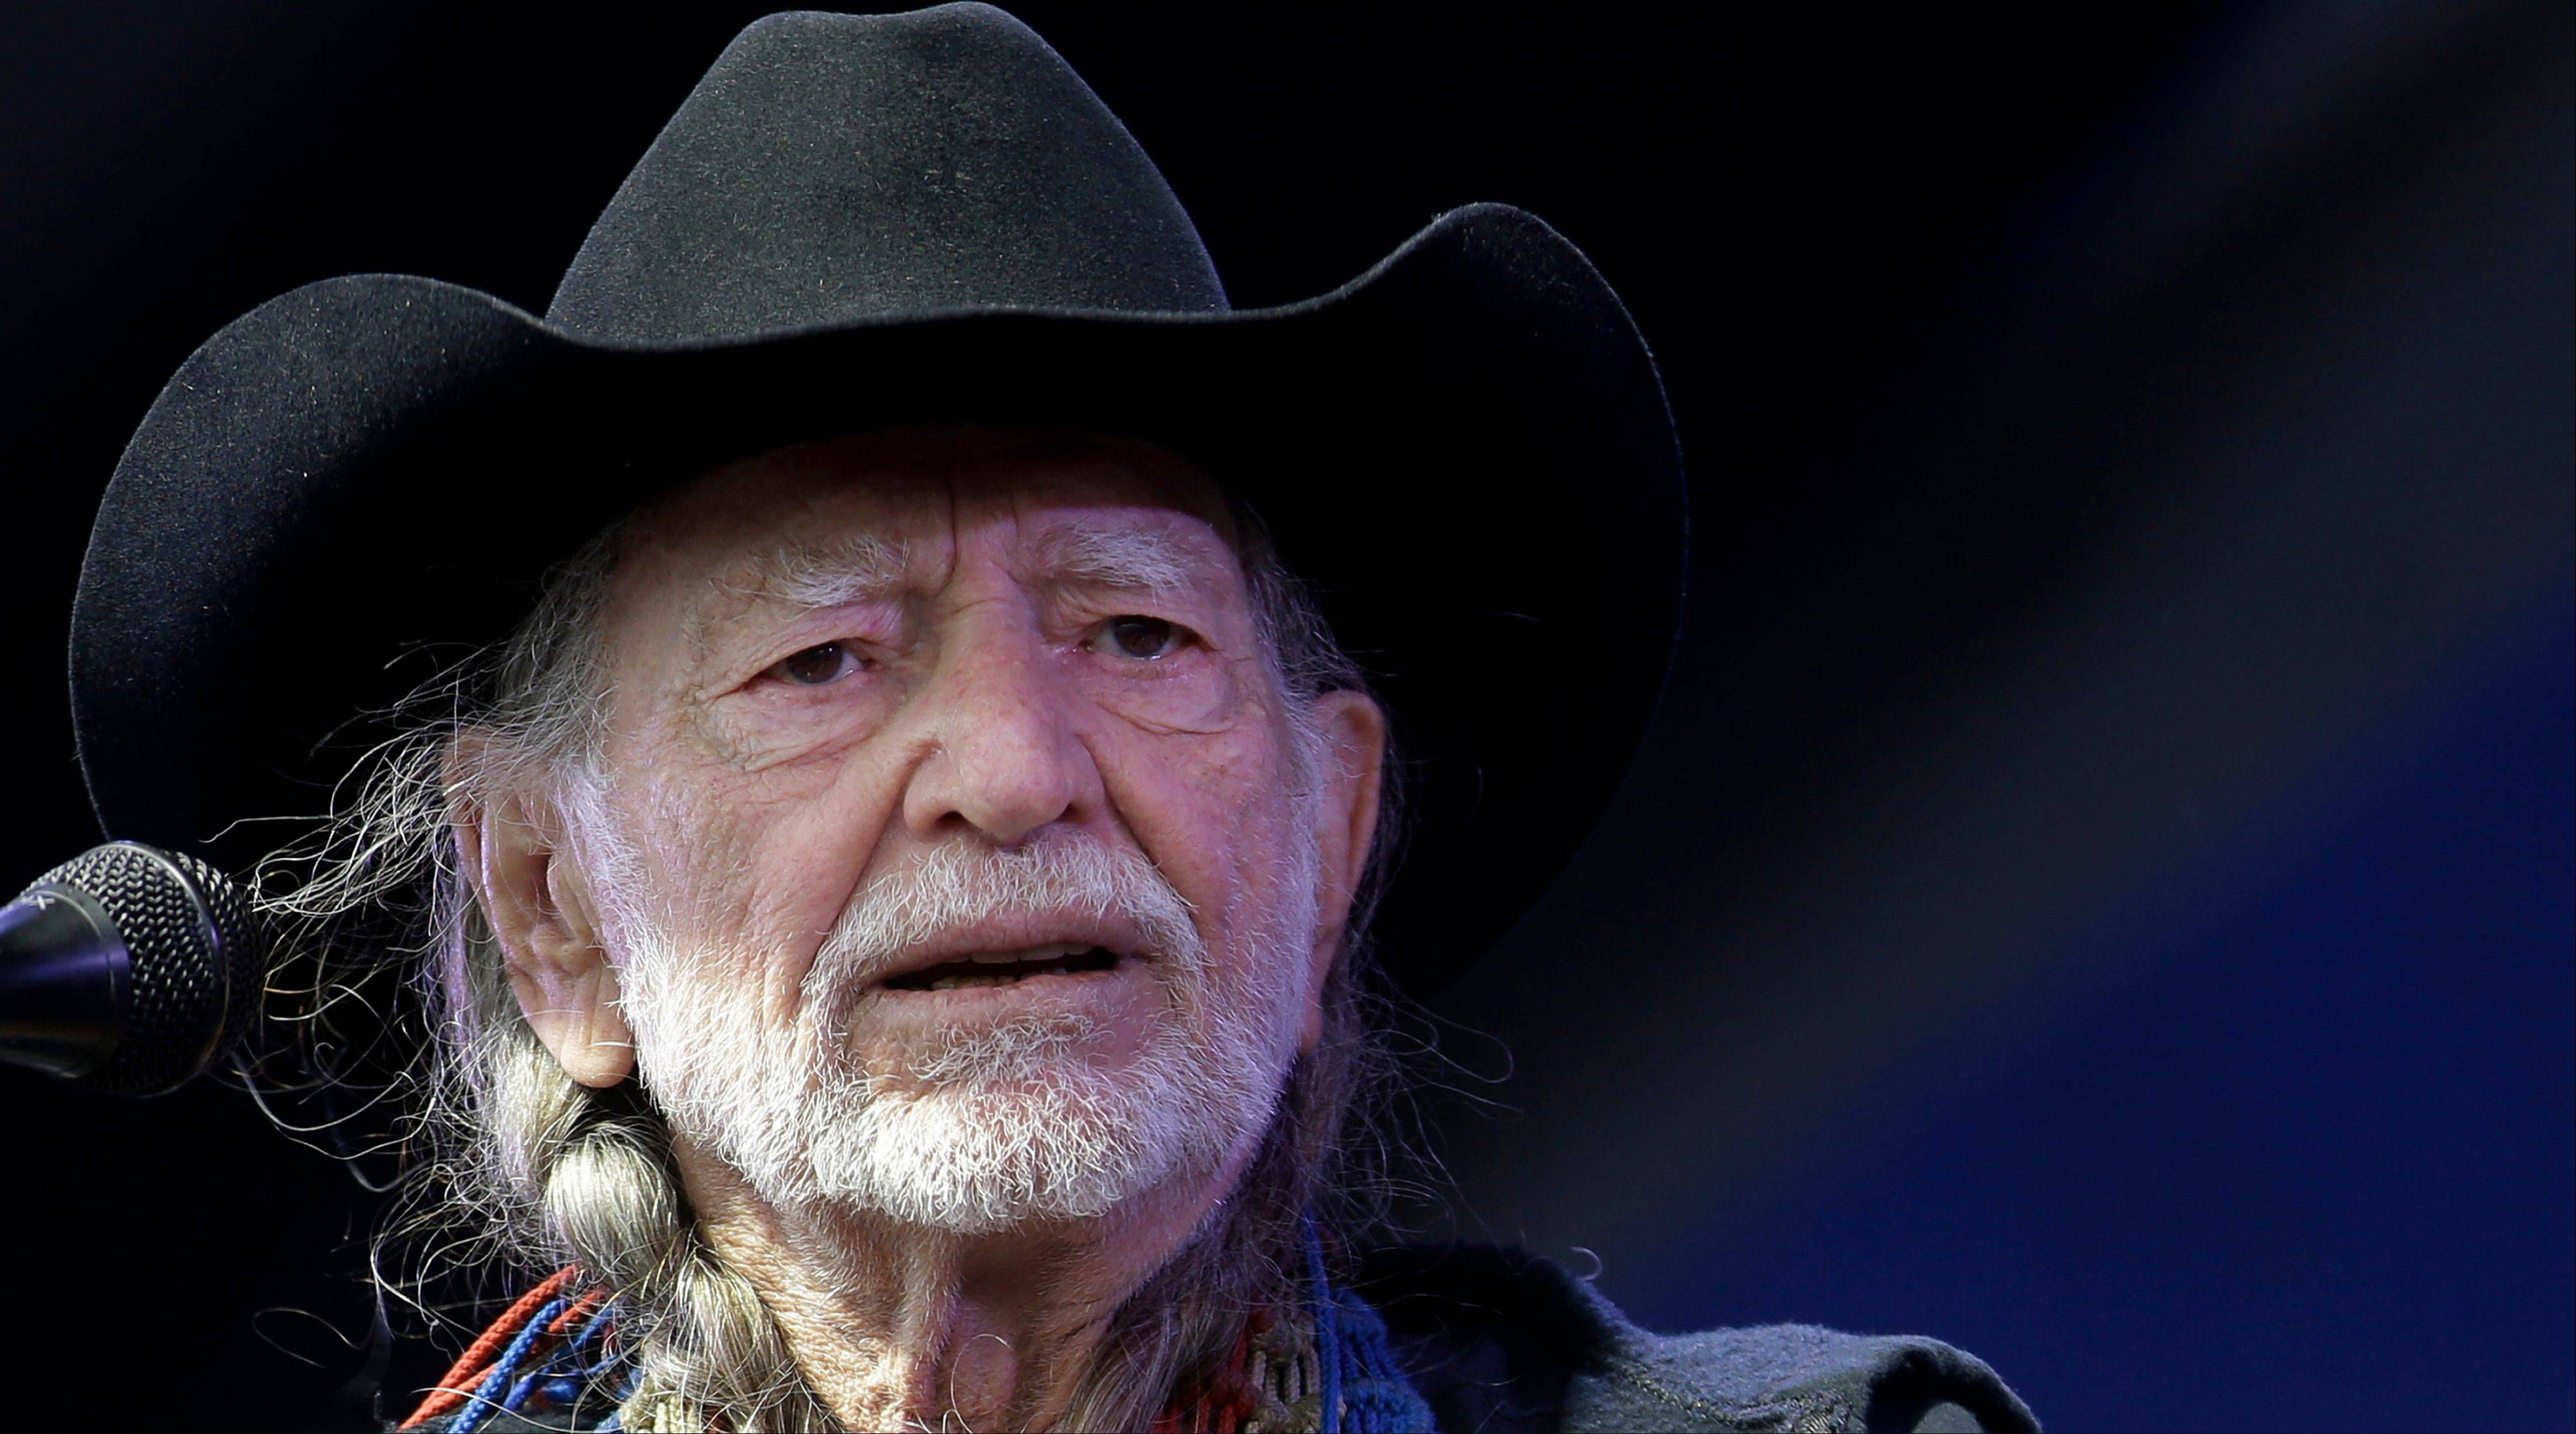 A missing toy armadillo with a connection to Willie Nelson has sparked a search in the New York suburbs. The Capitol Theater�s general manager says a stuffed armadillo beloved by a member of Nelson�s crew was stolen from the stage after a Nelson concert last Thursday, Sept. 19, 2013.